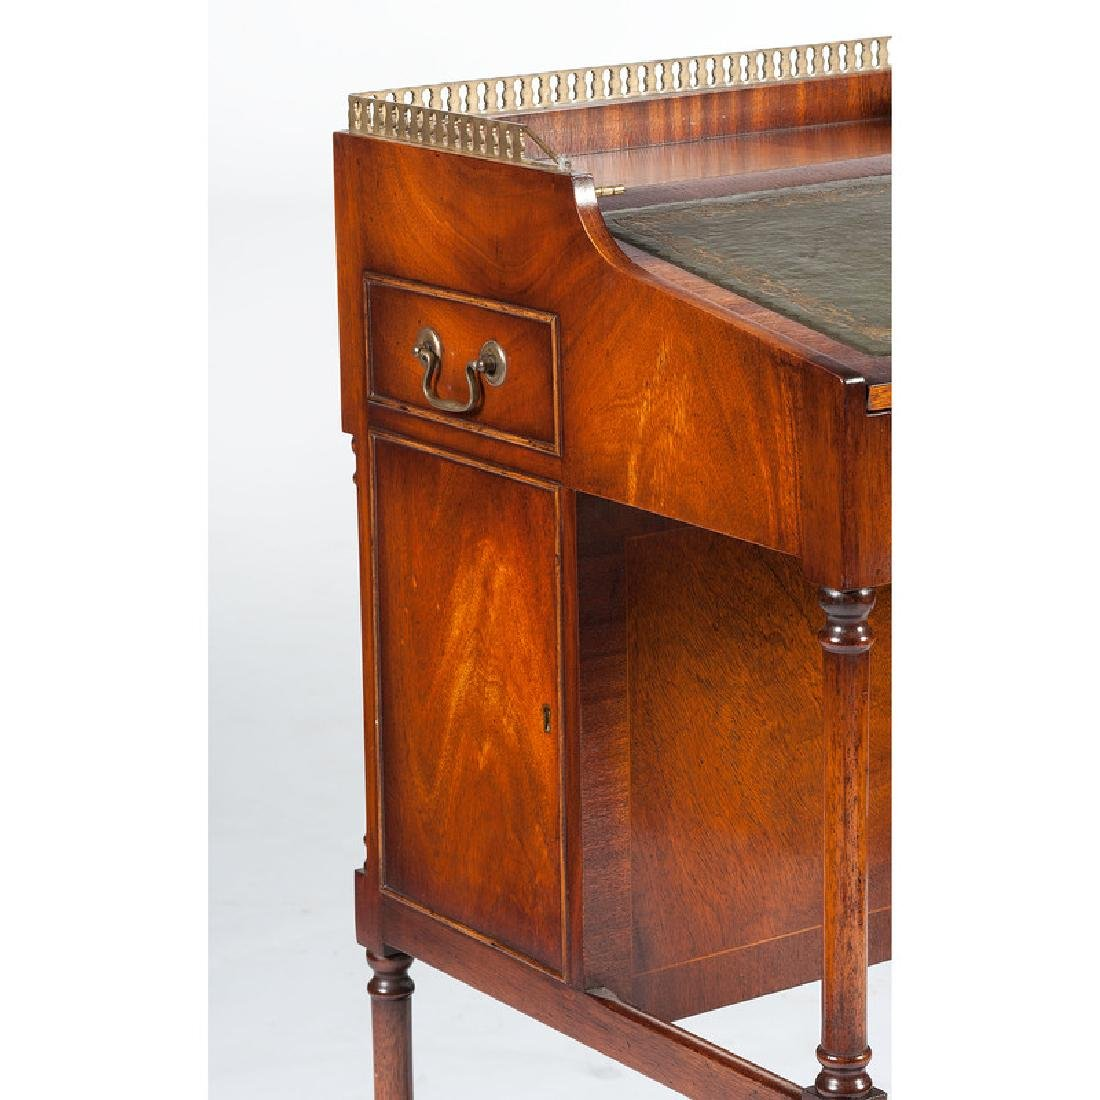 English Mahogany Desk with Stool - 3